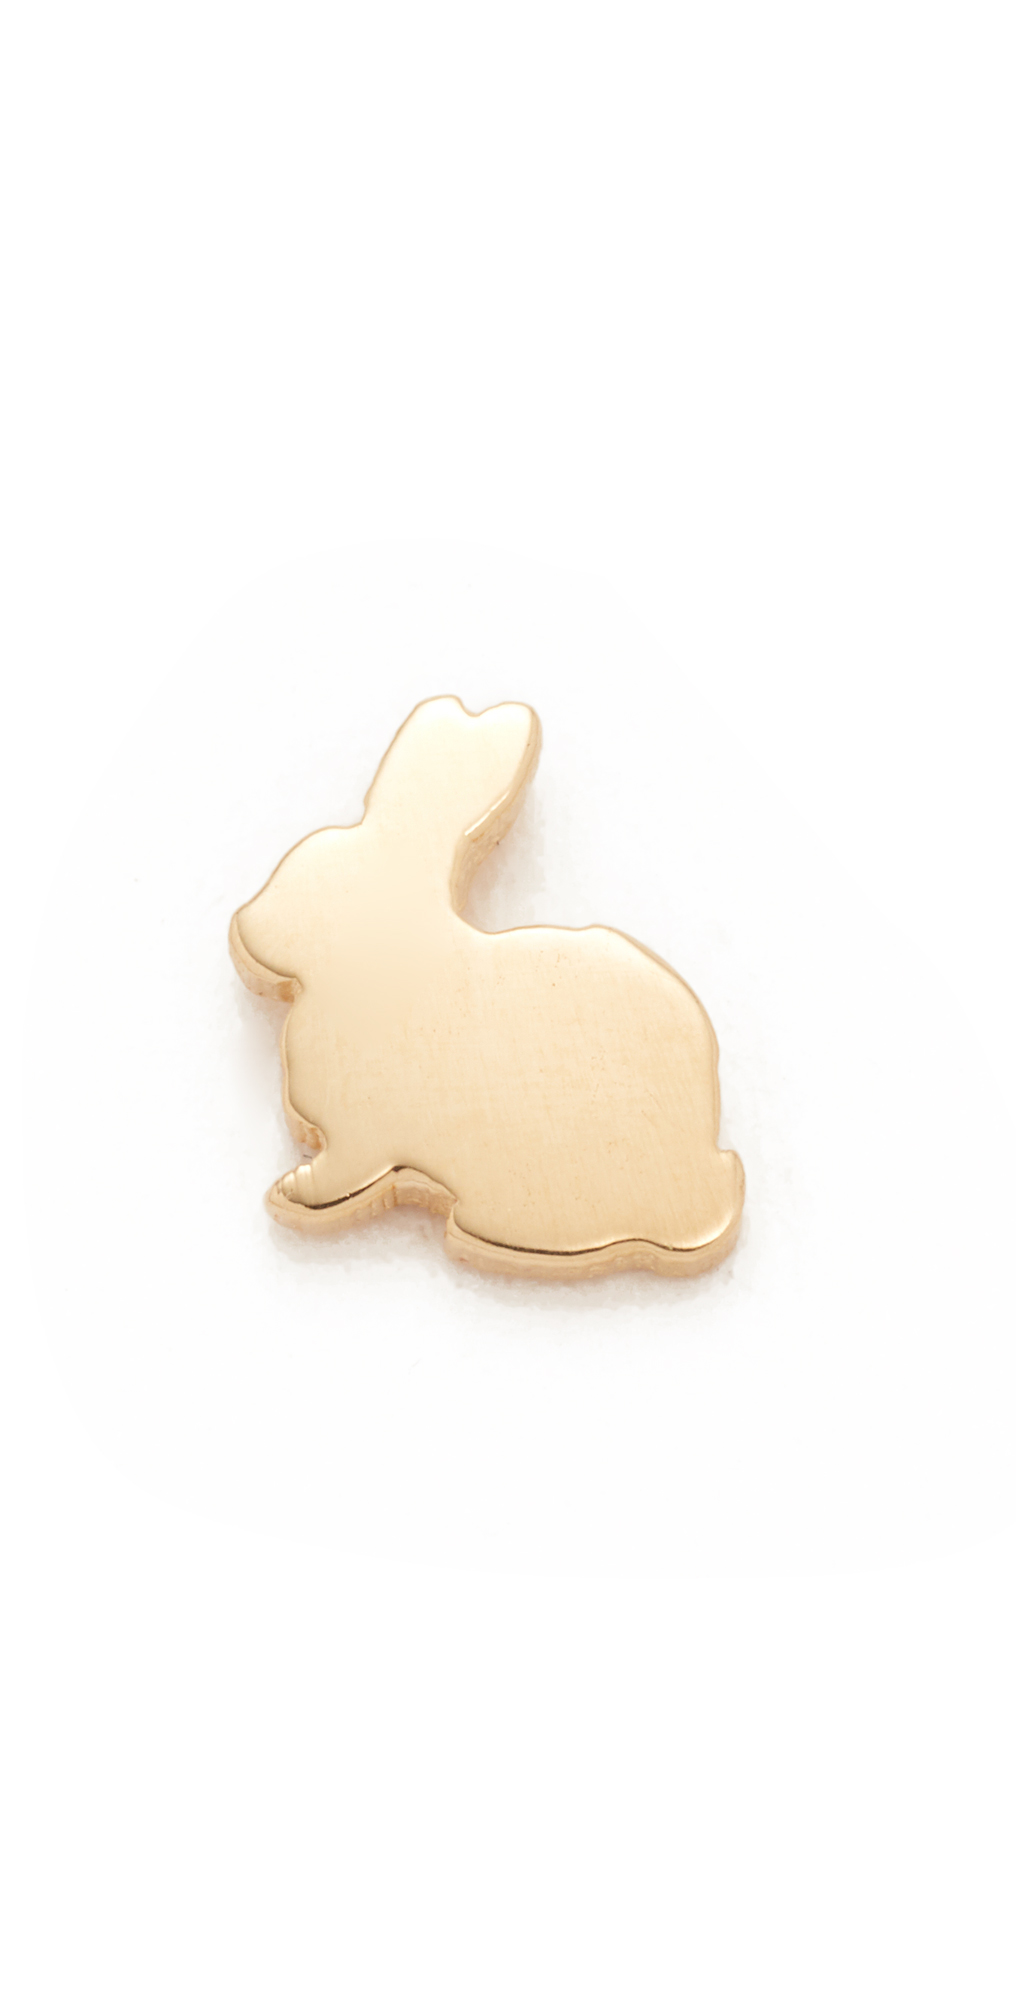 14k Gold Menagerie Bunny Stud Earring Ariel Gordon Jewelry